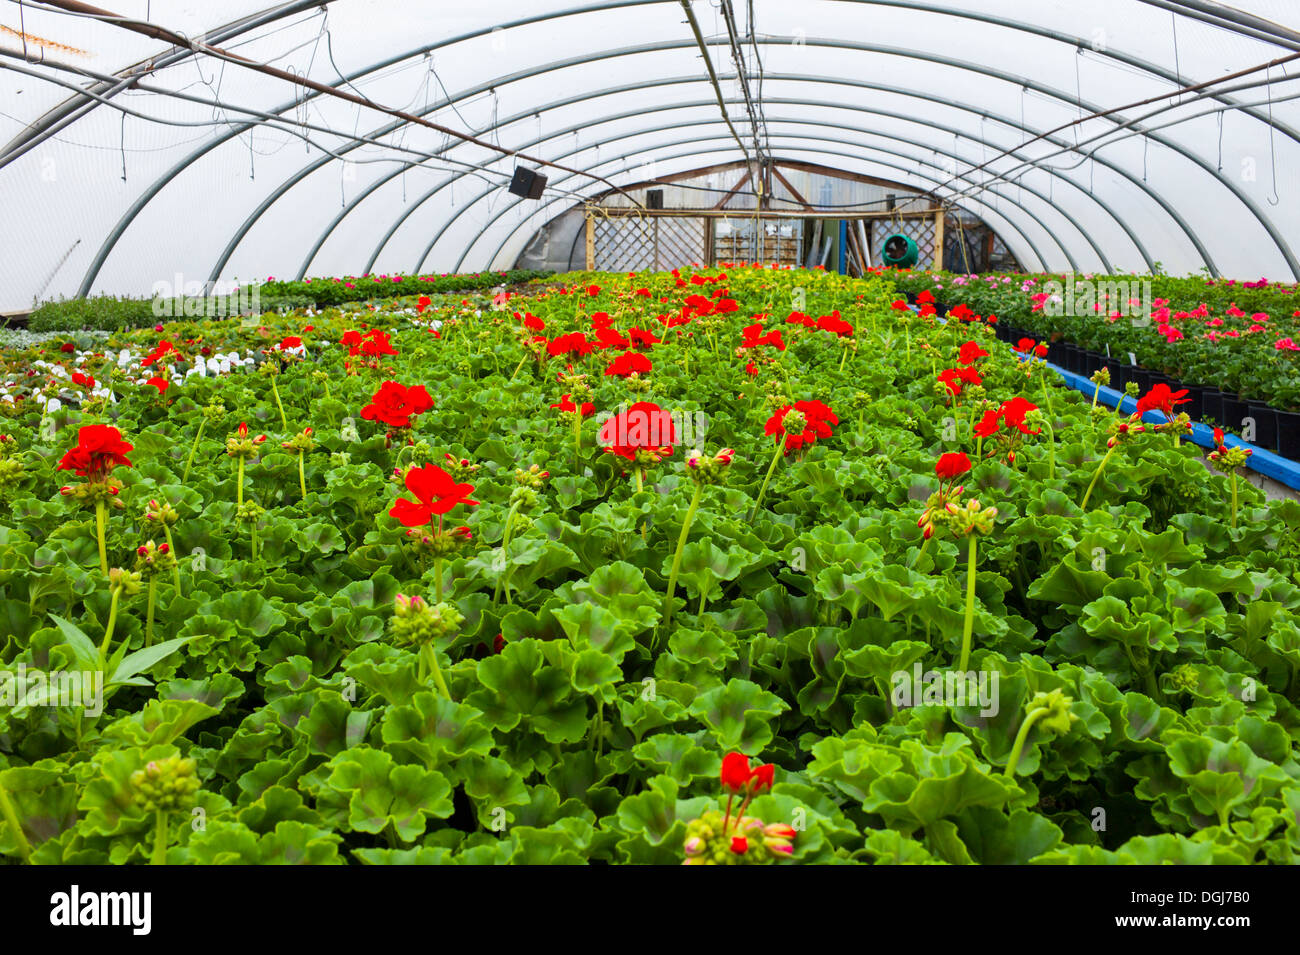 Inside a commercial nursery polytunnel growing geraniums and other plants. - Stock Image